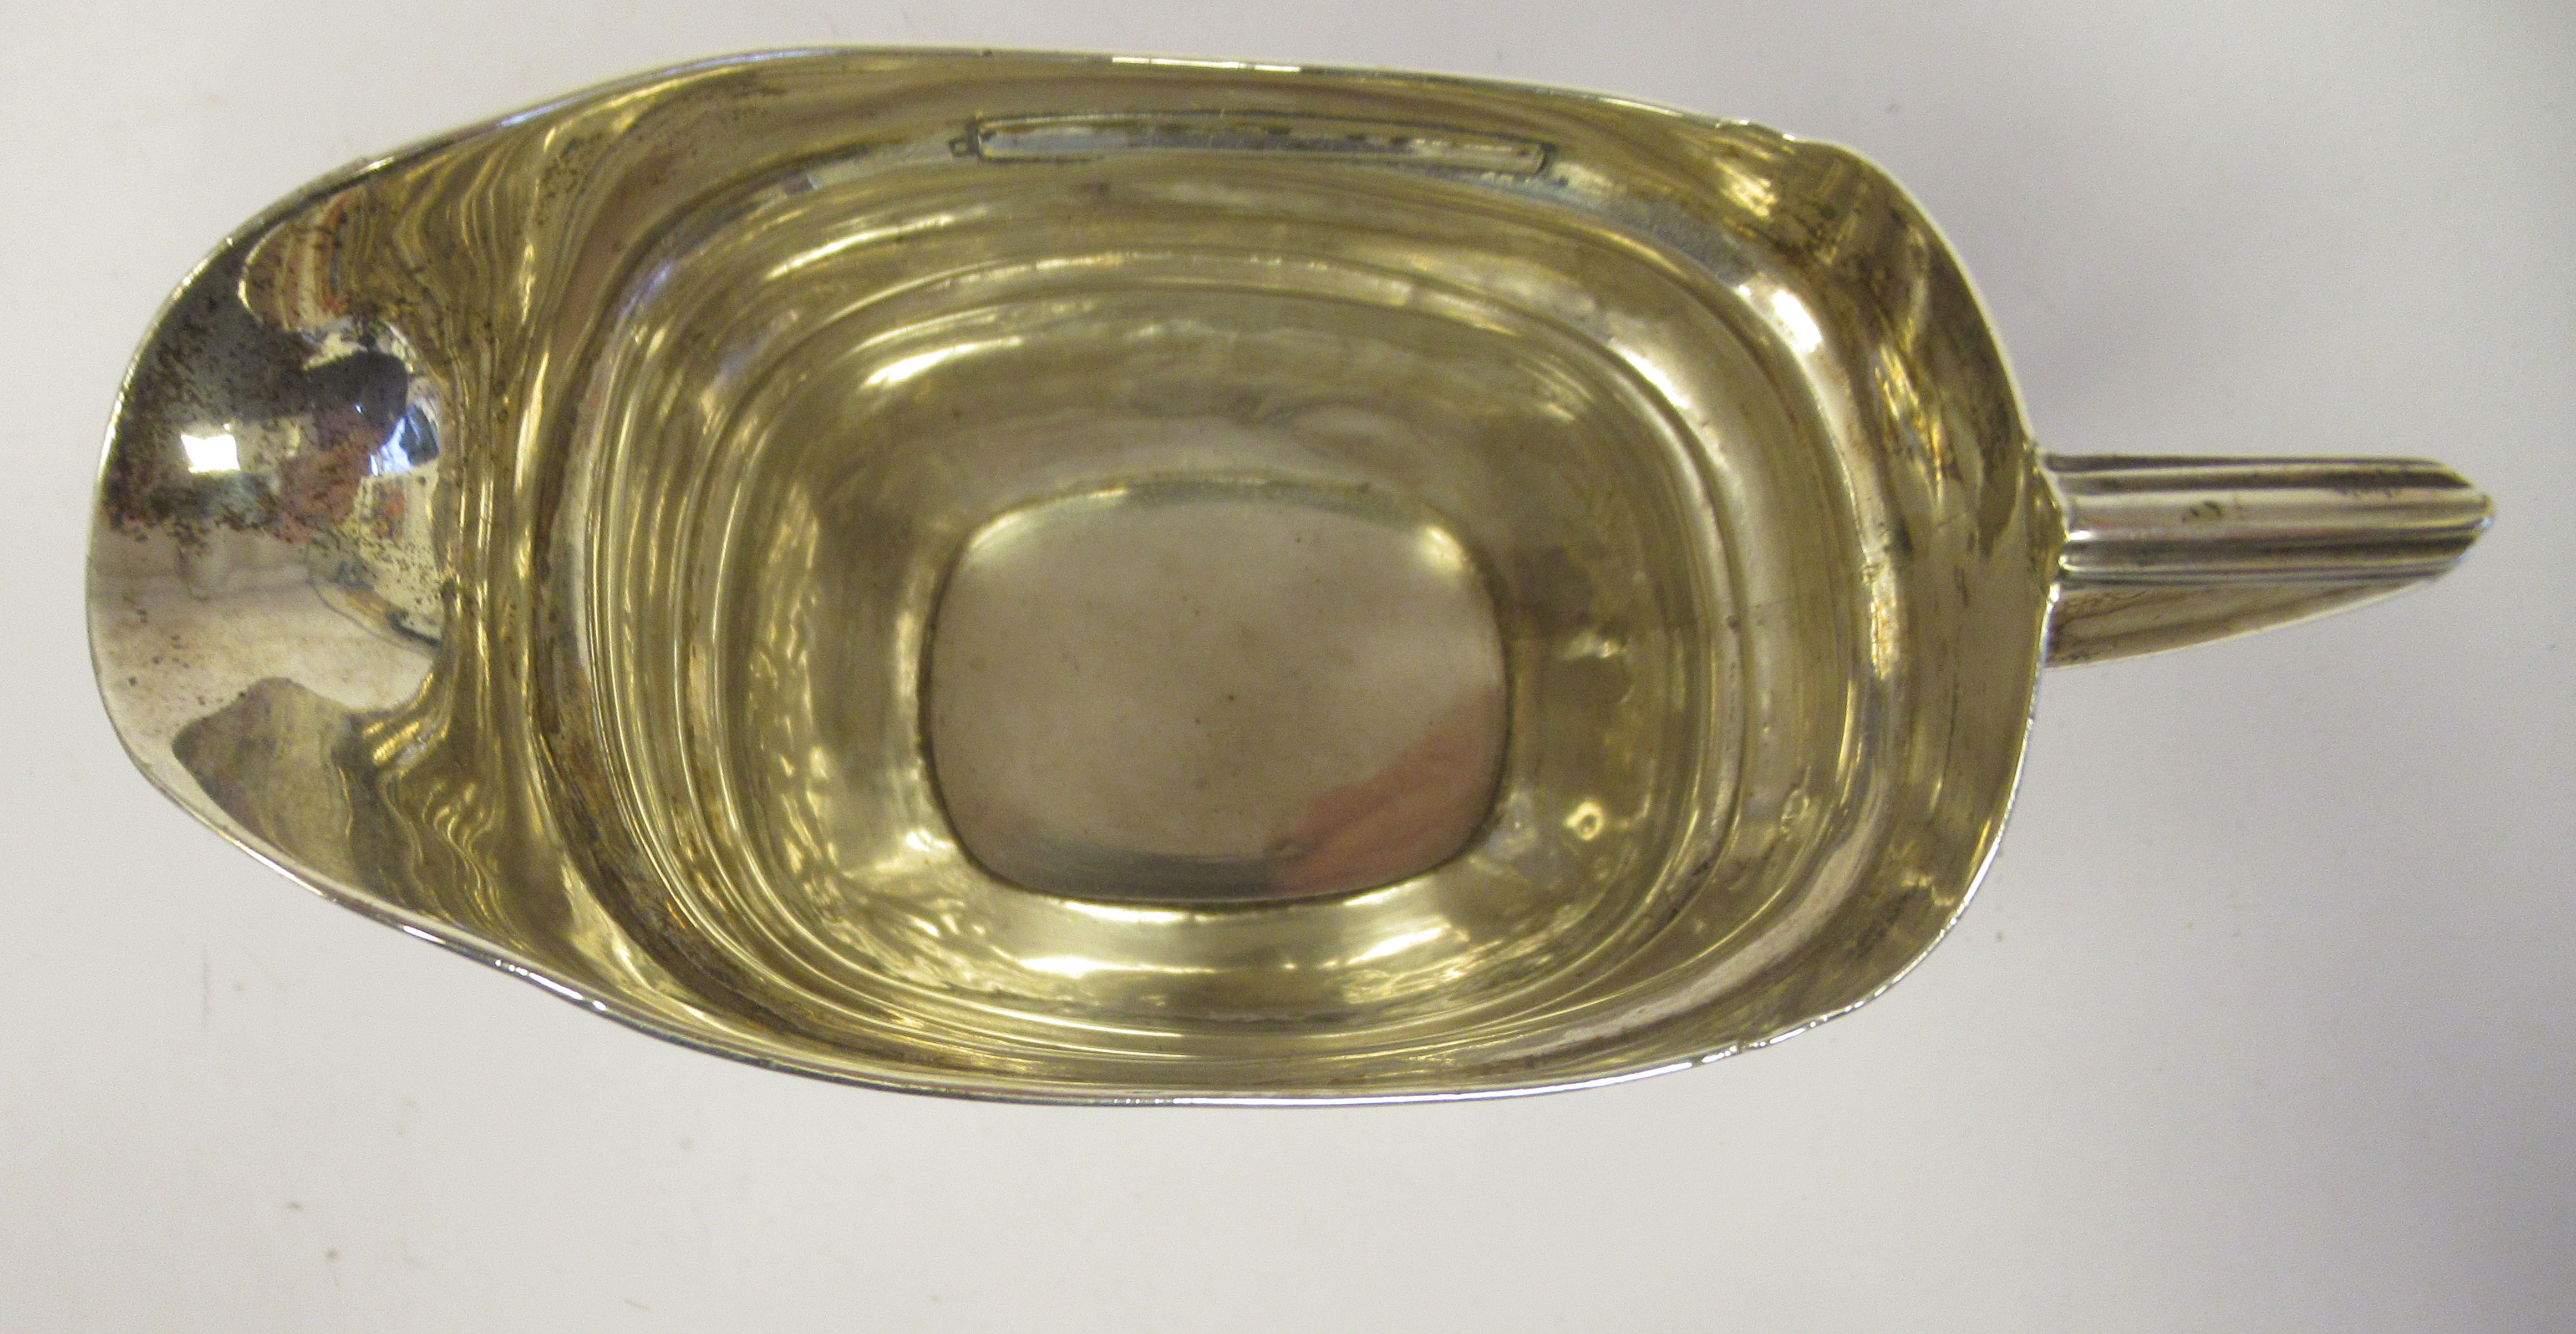 A late 18th/early 19thC silver cream jug of stepped and tapered rectangular outline with bands of - Image 5 of 7